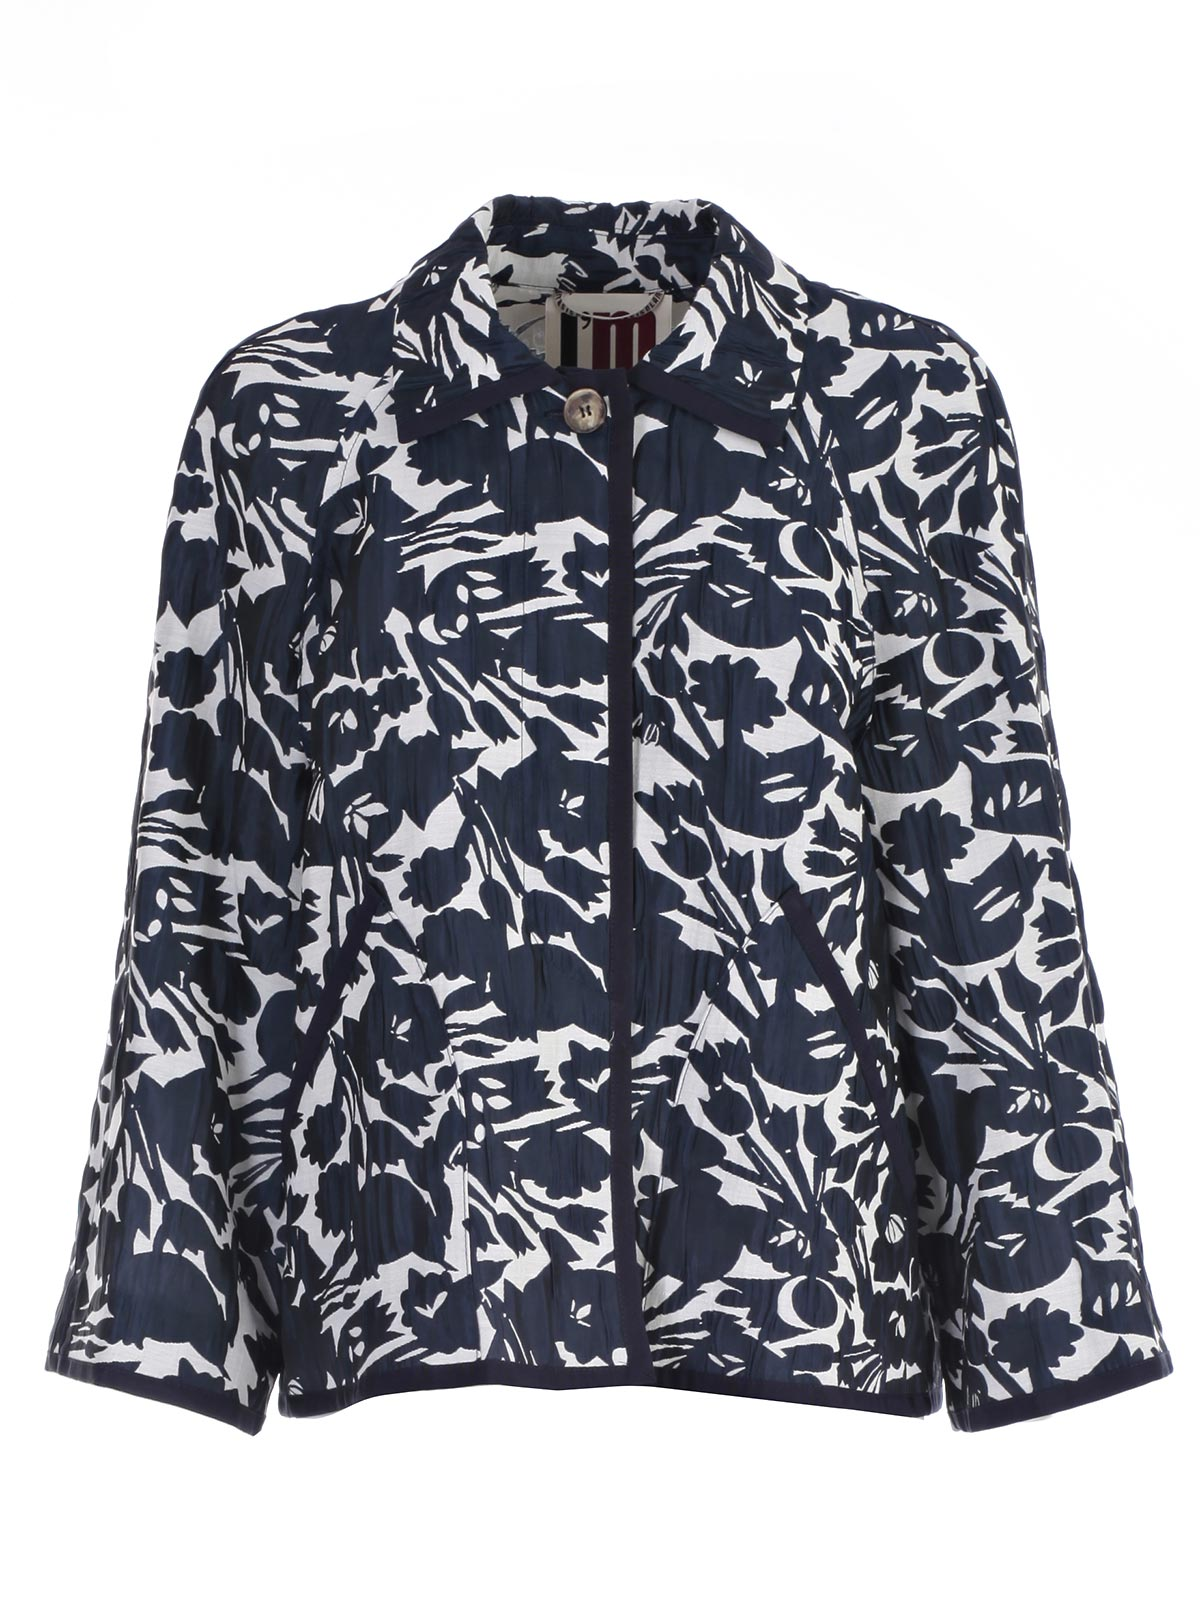 Picture of I'M ISOLA MARRAS JACKET